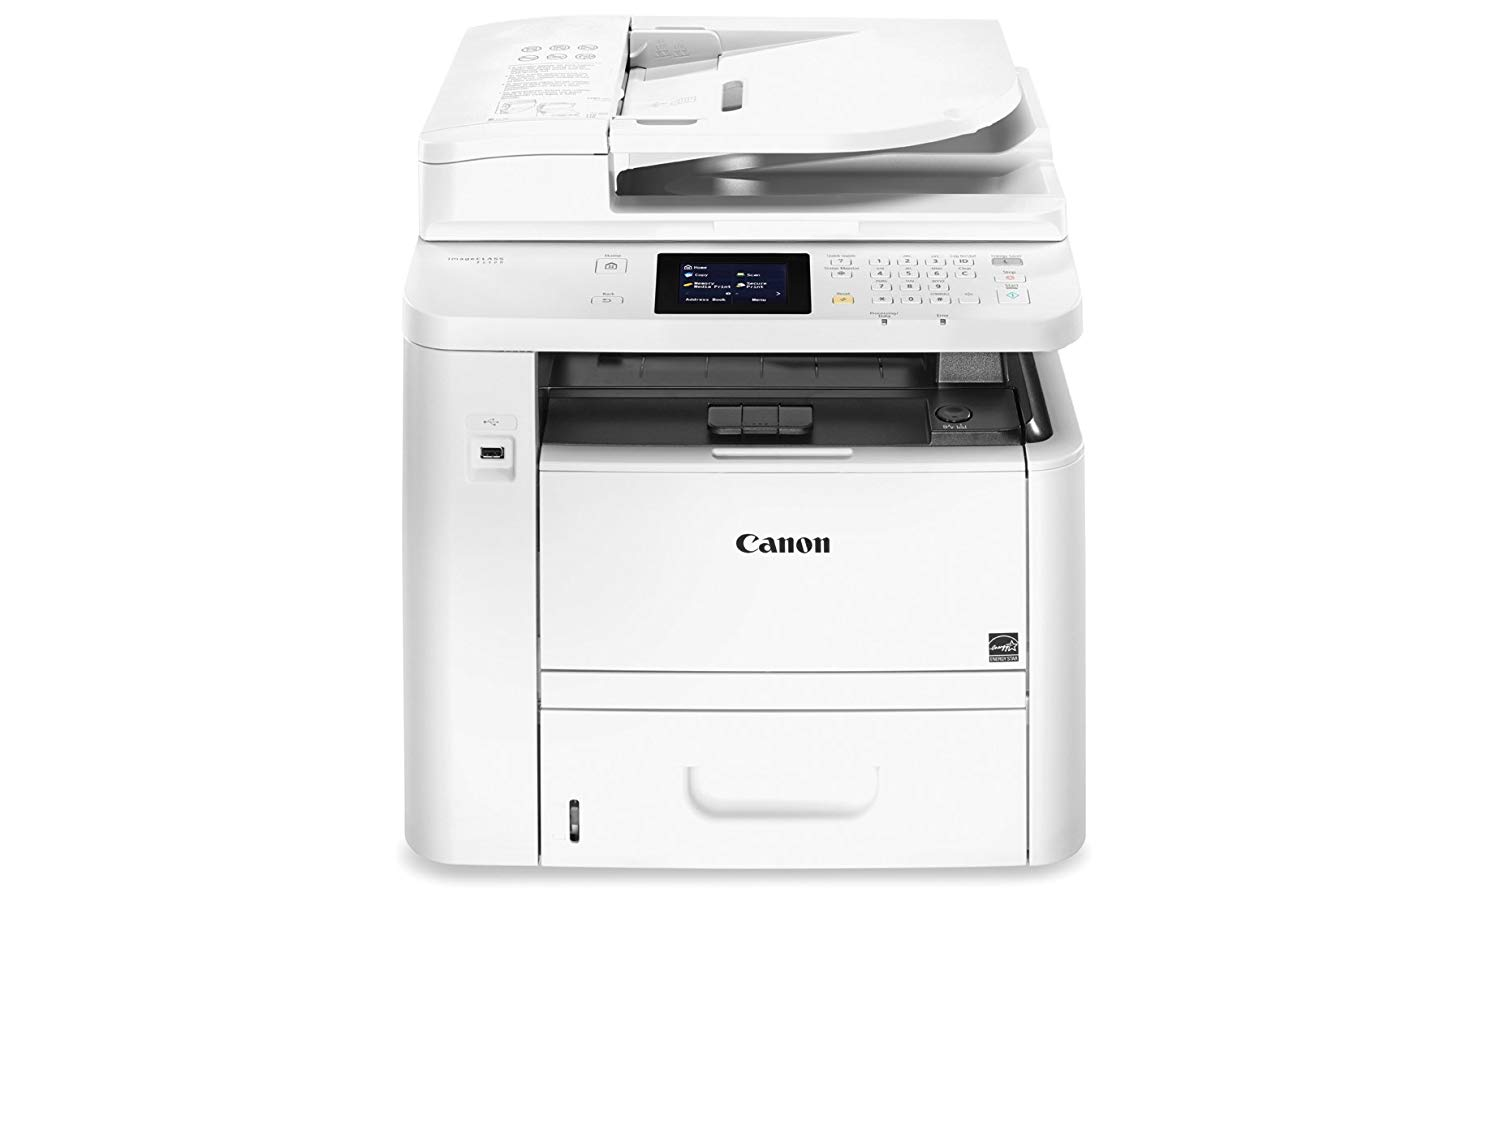 Canon Lasers Imageclass D1520 Photocopy Machines For Small Business